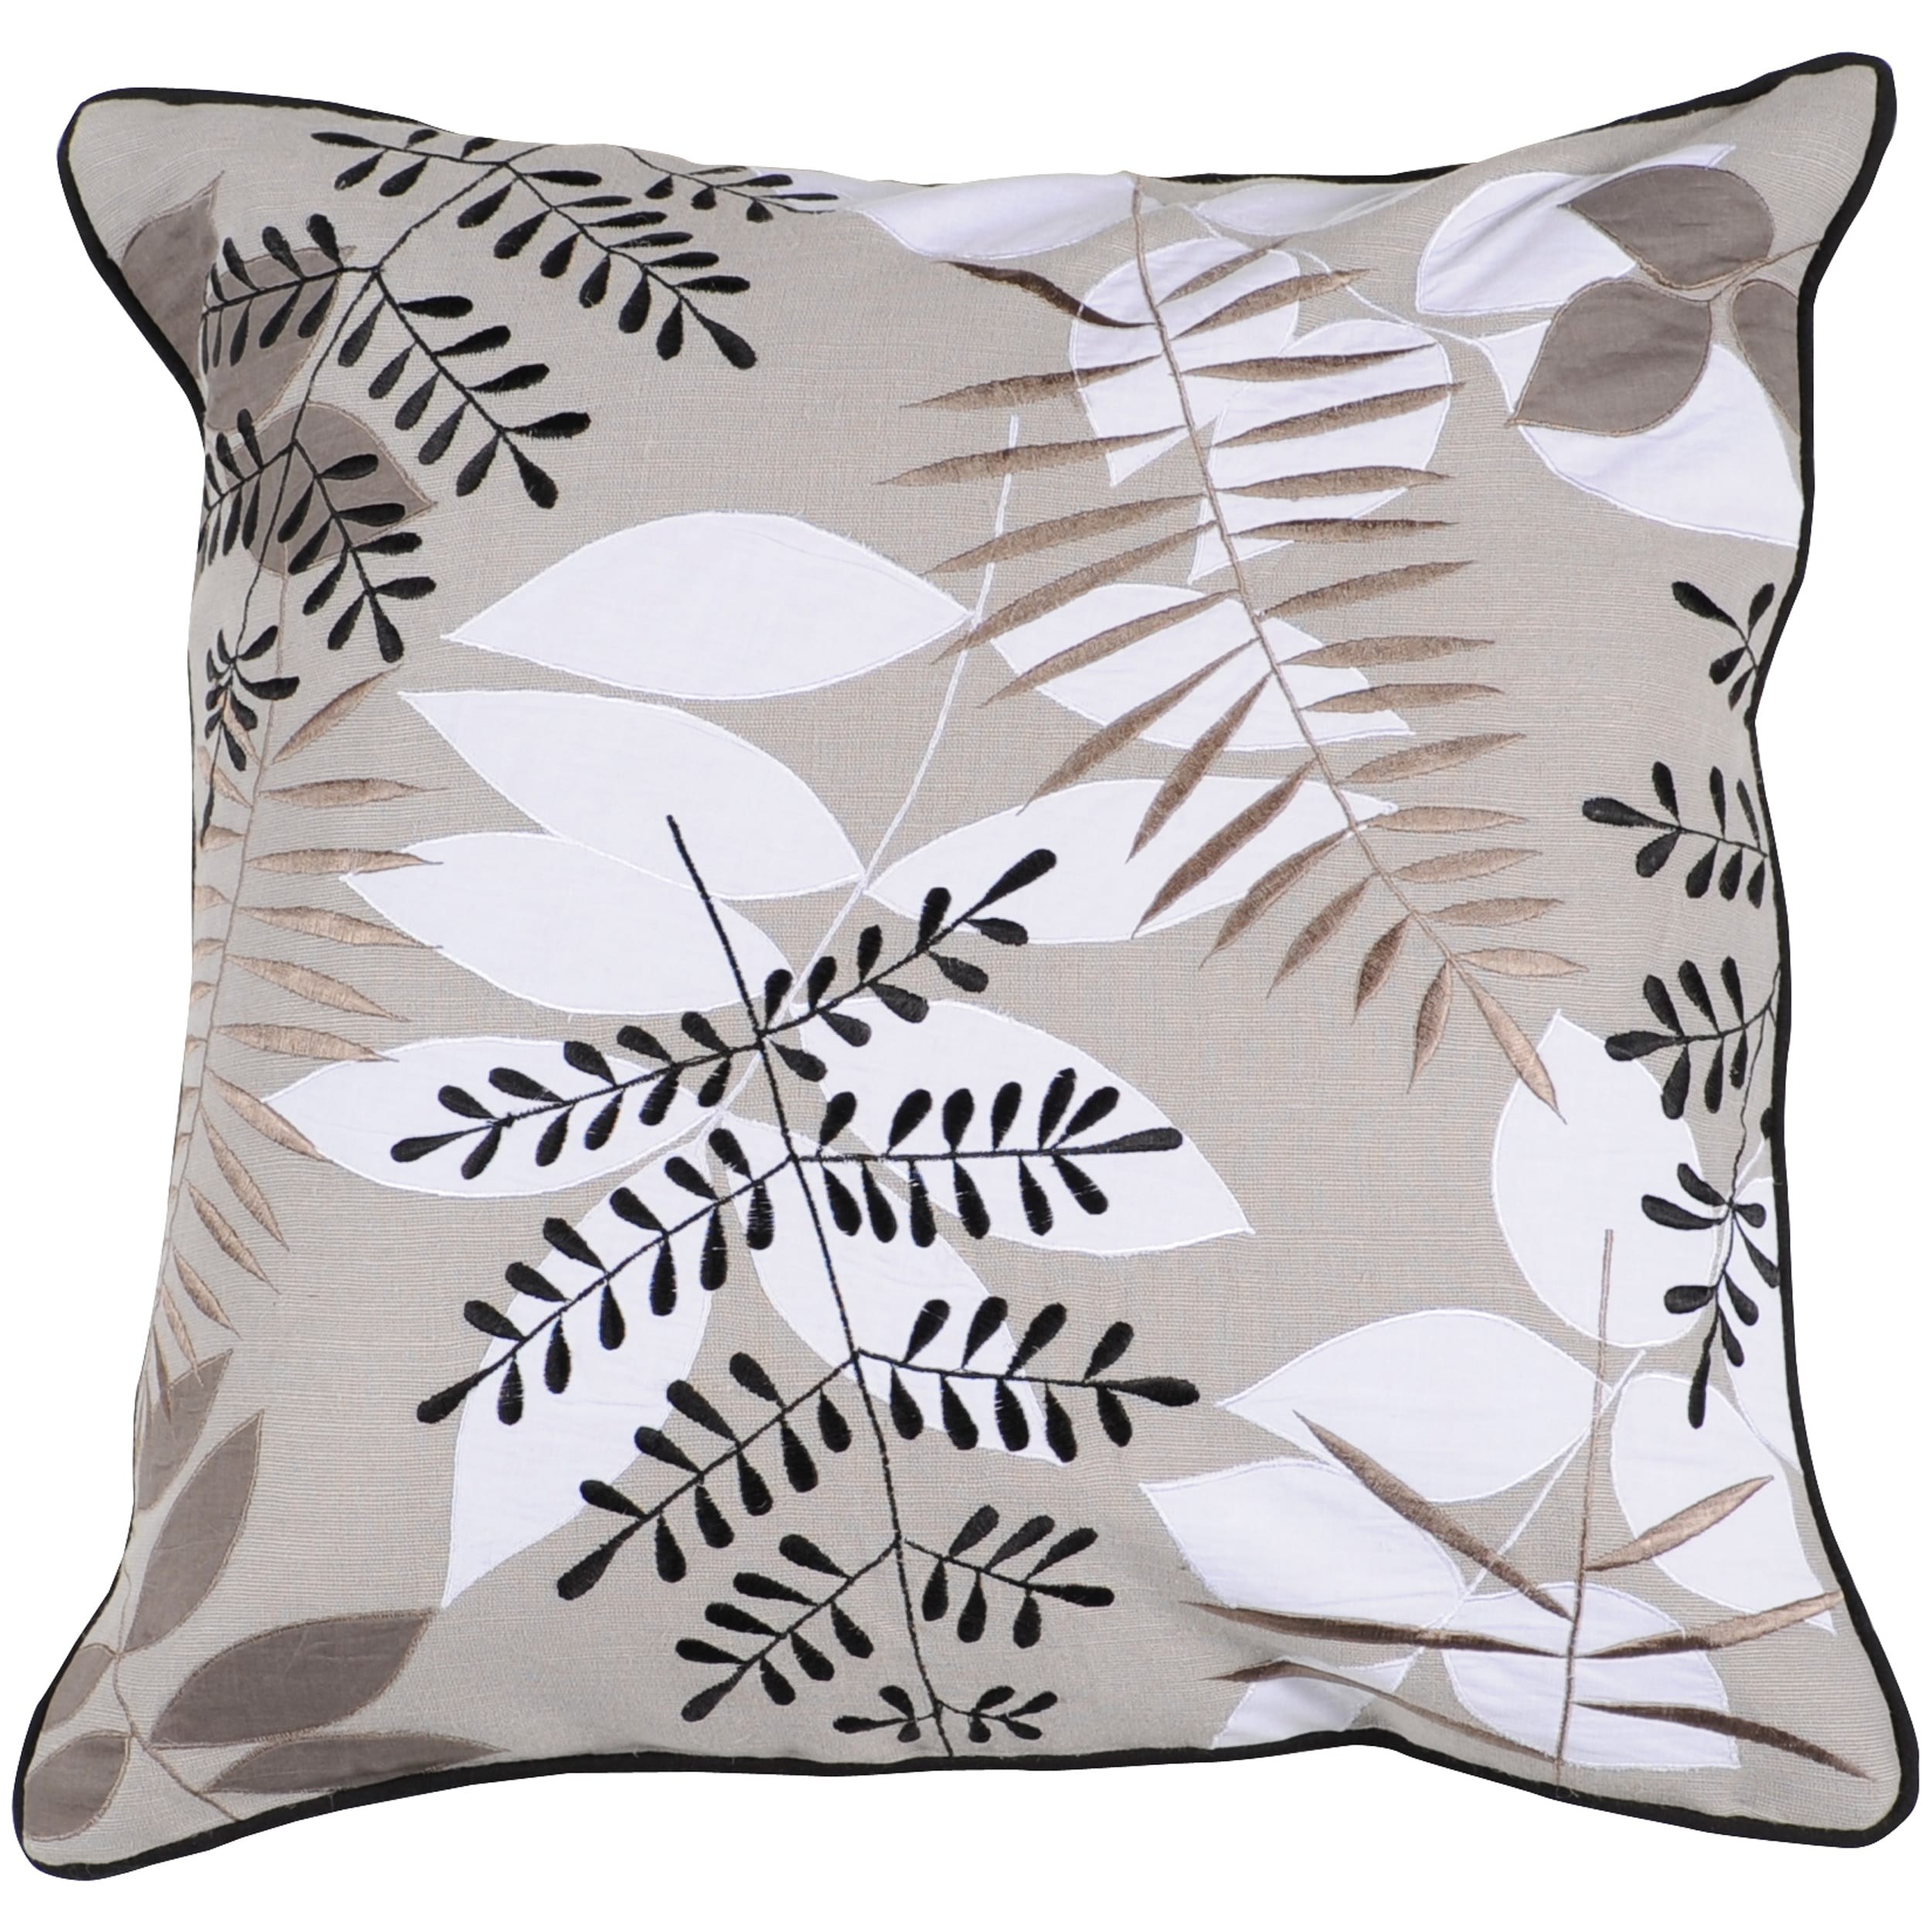 Big Square Decorative Pillows : Decorative Square Hype Large Tinted Pillow - Overstock Shopping - Great Deals on Throw Pillows